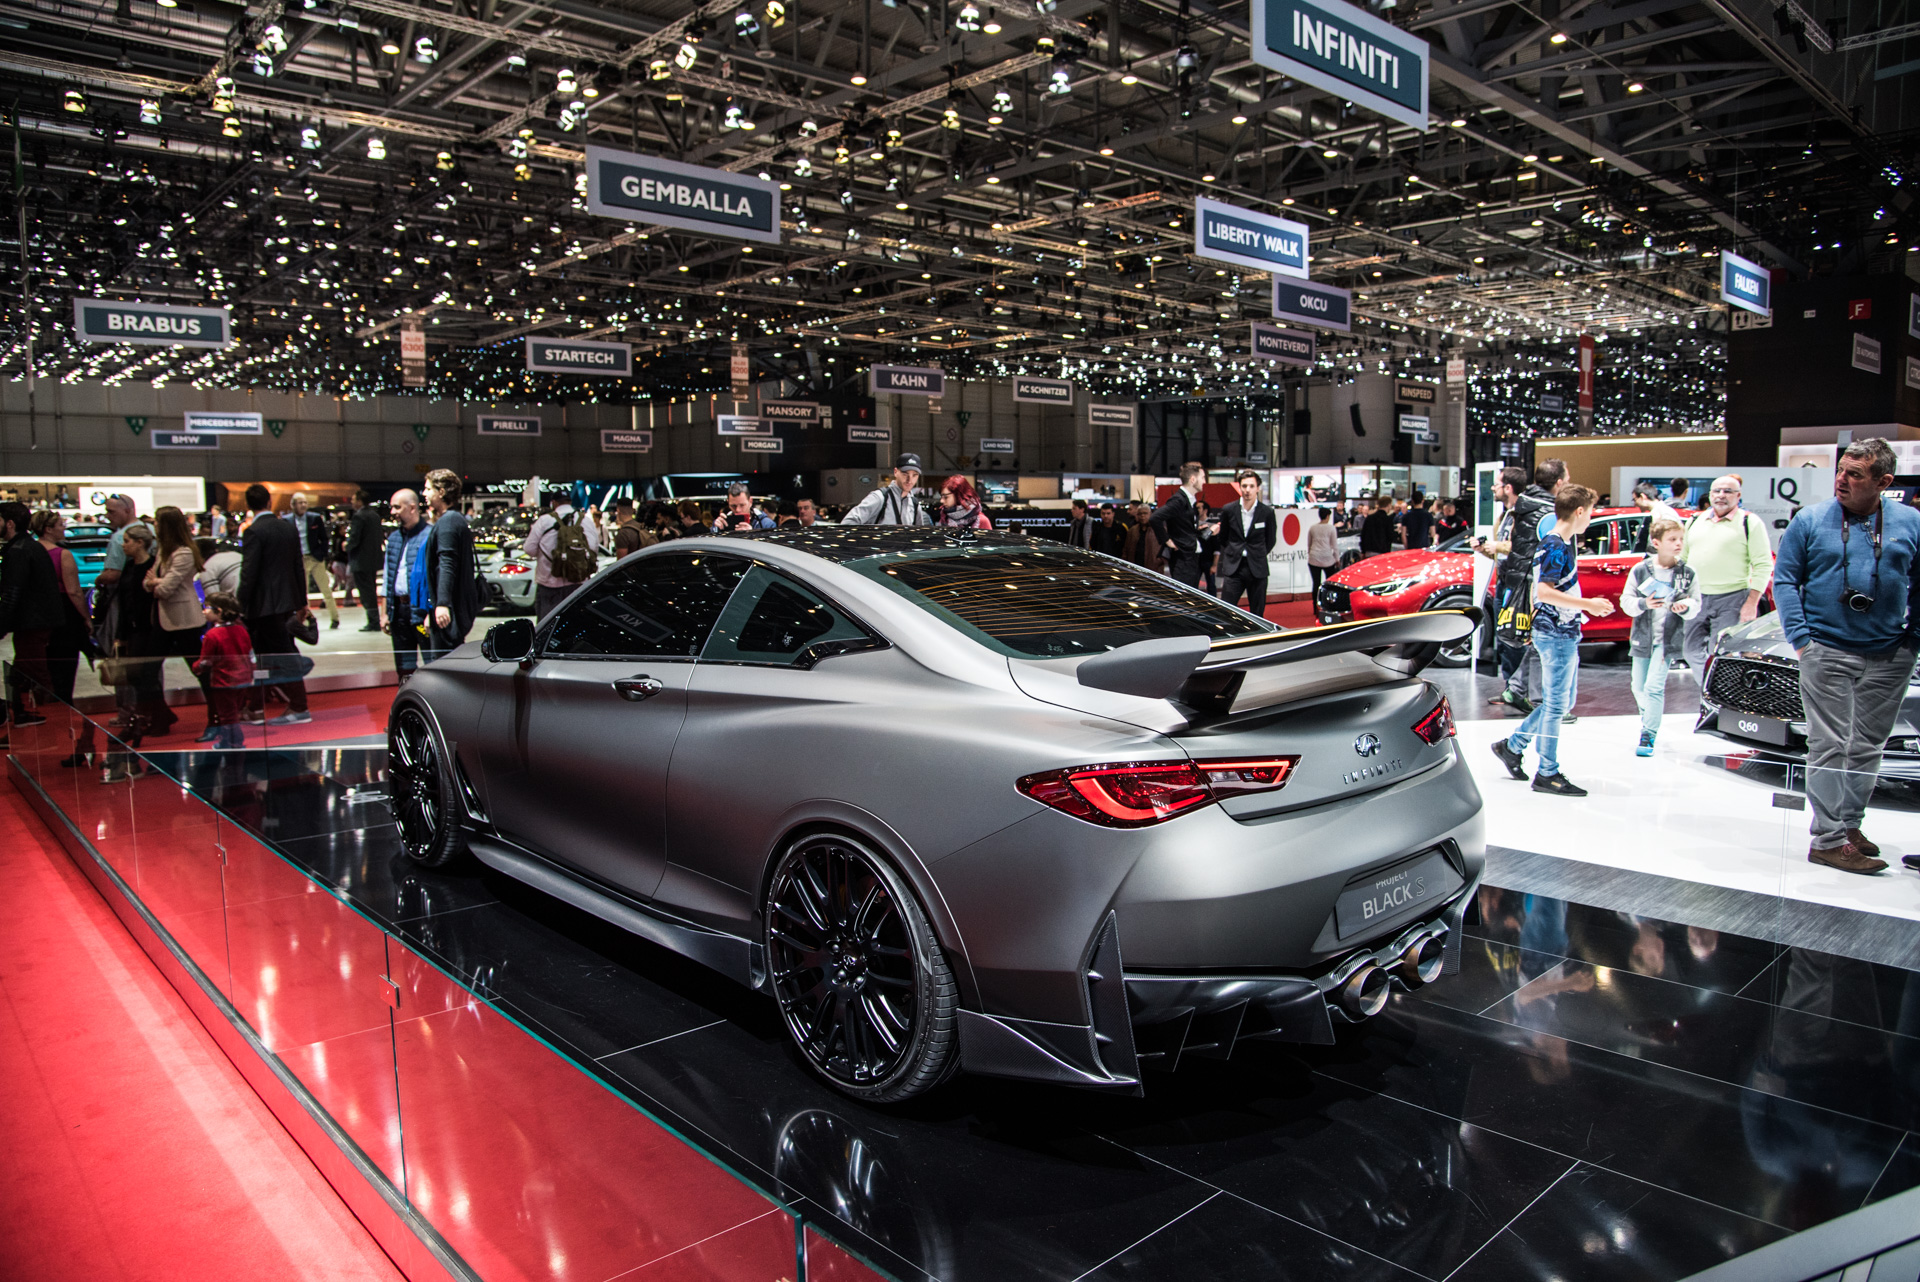 geneva-international-motor-show-igor-sinitsin-30